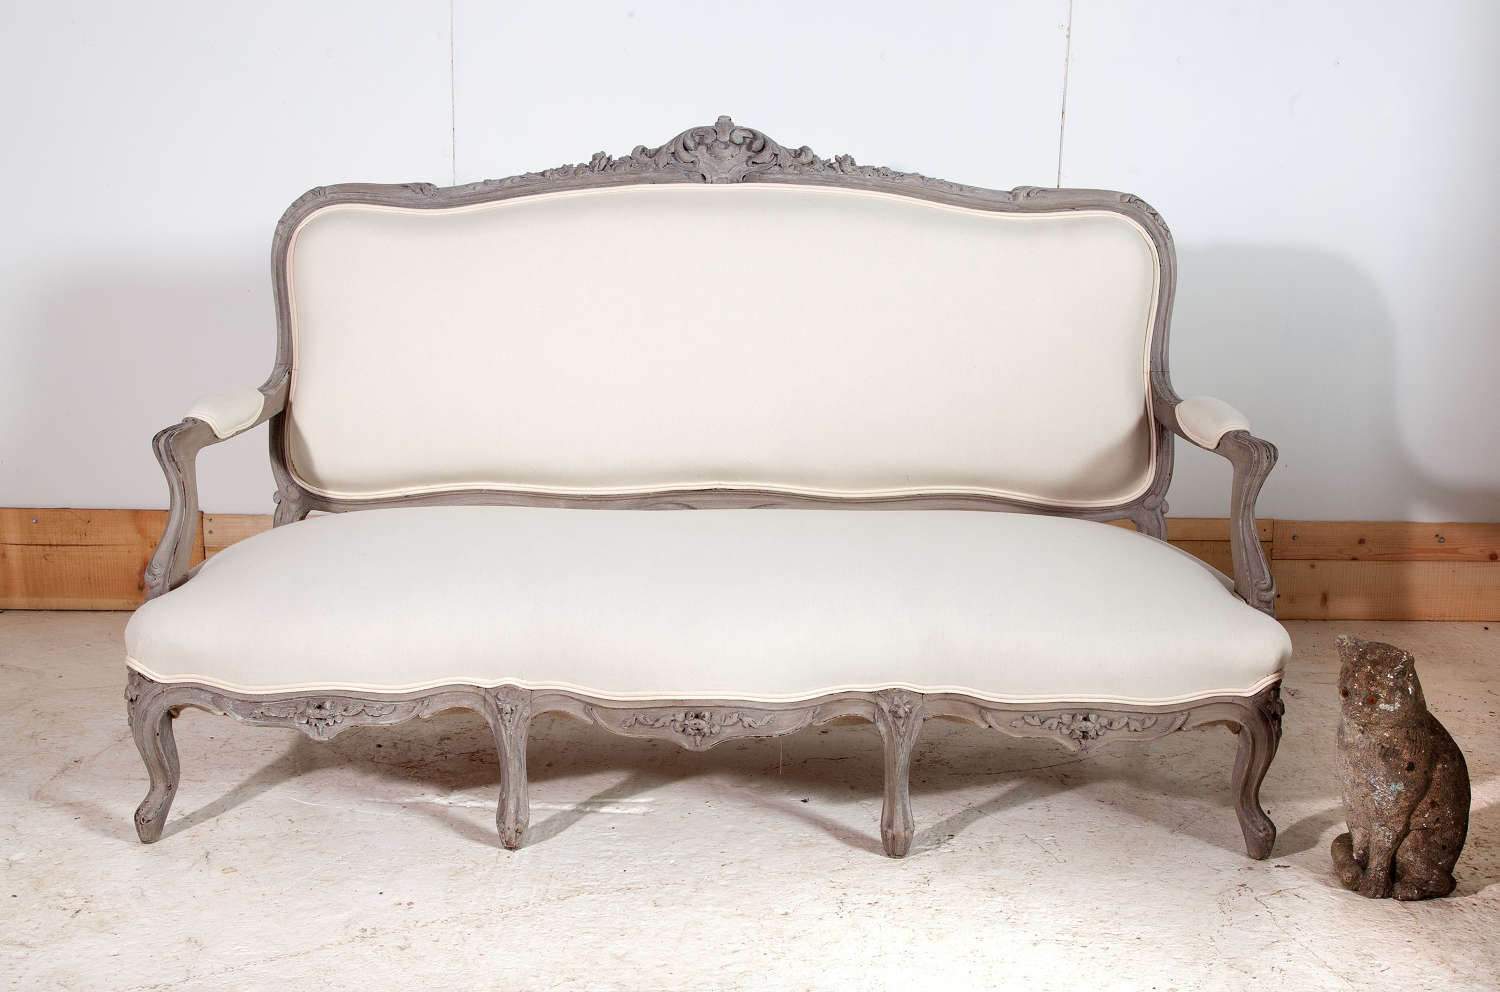 19th Century French Painted Canape Sofa in Louis XV Style